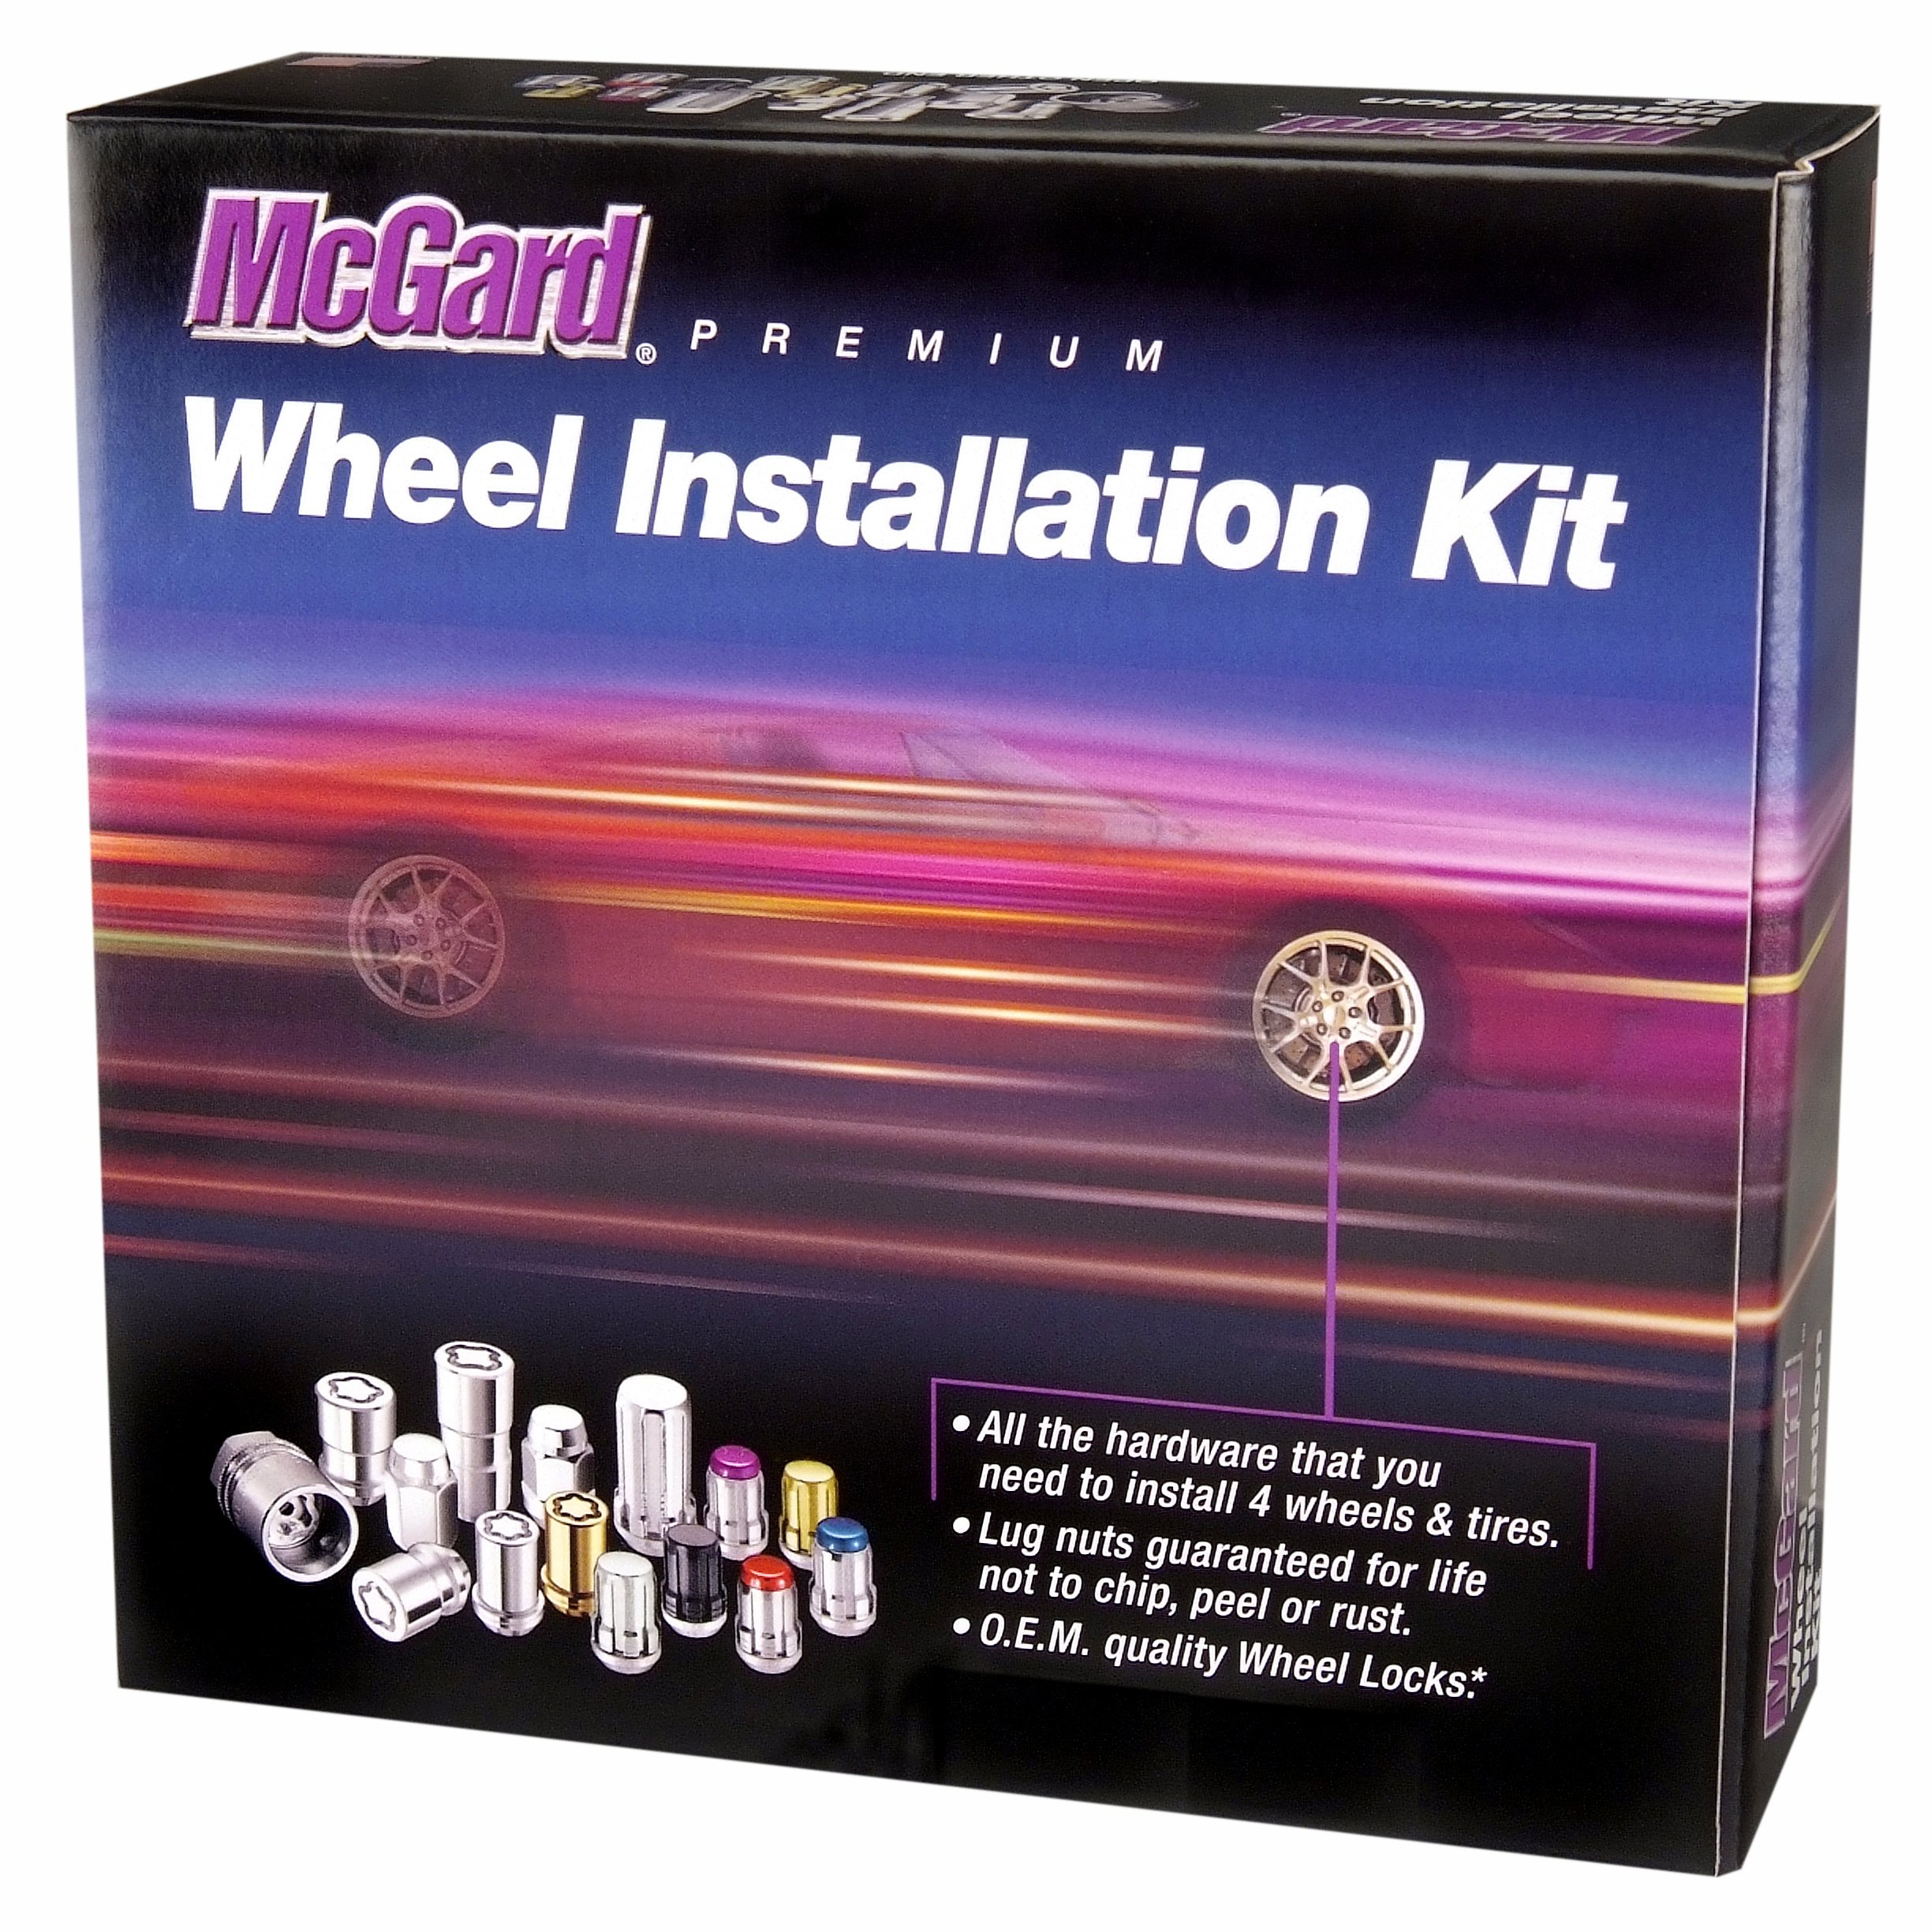 McGard 65610BK SplineDrive Chrome/Black (M14 x 1.5 Thread Size) Wheel Installation Kit for 6-Lug Wheels